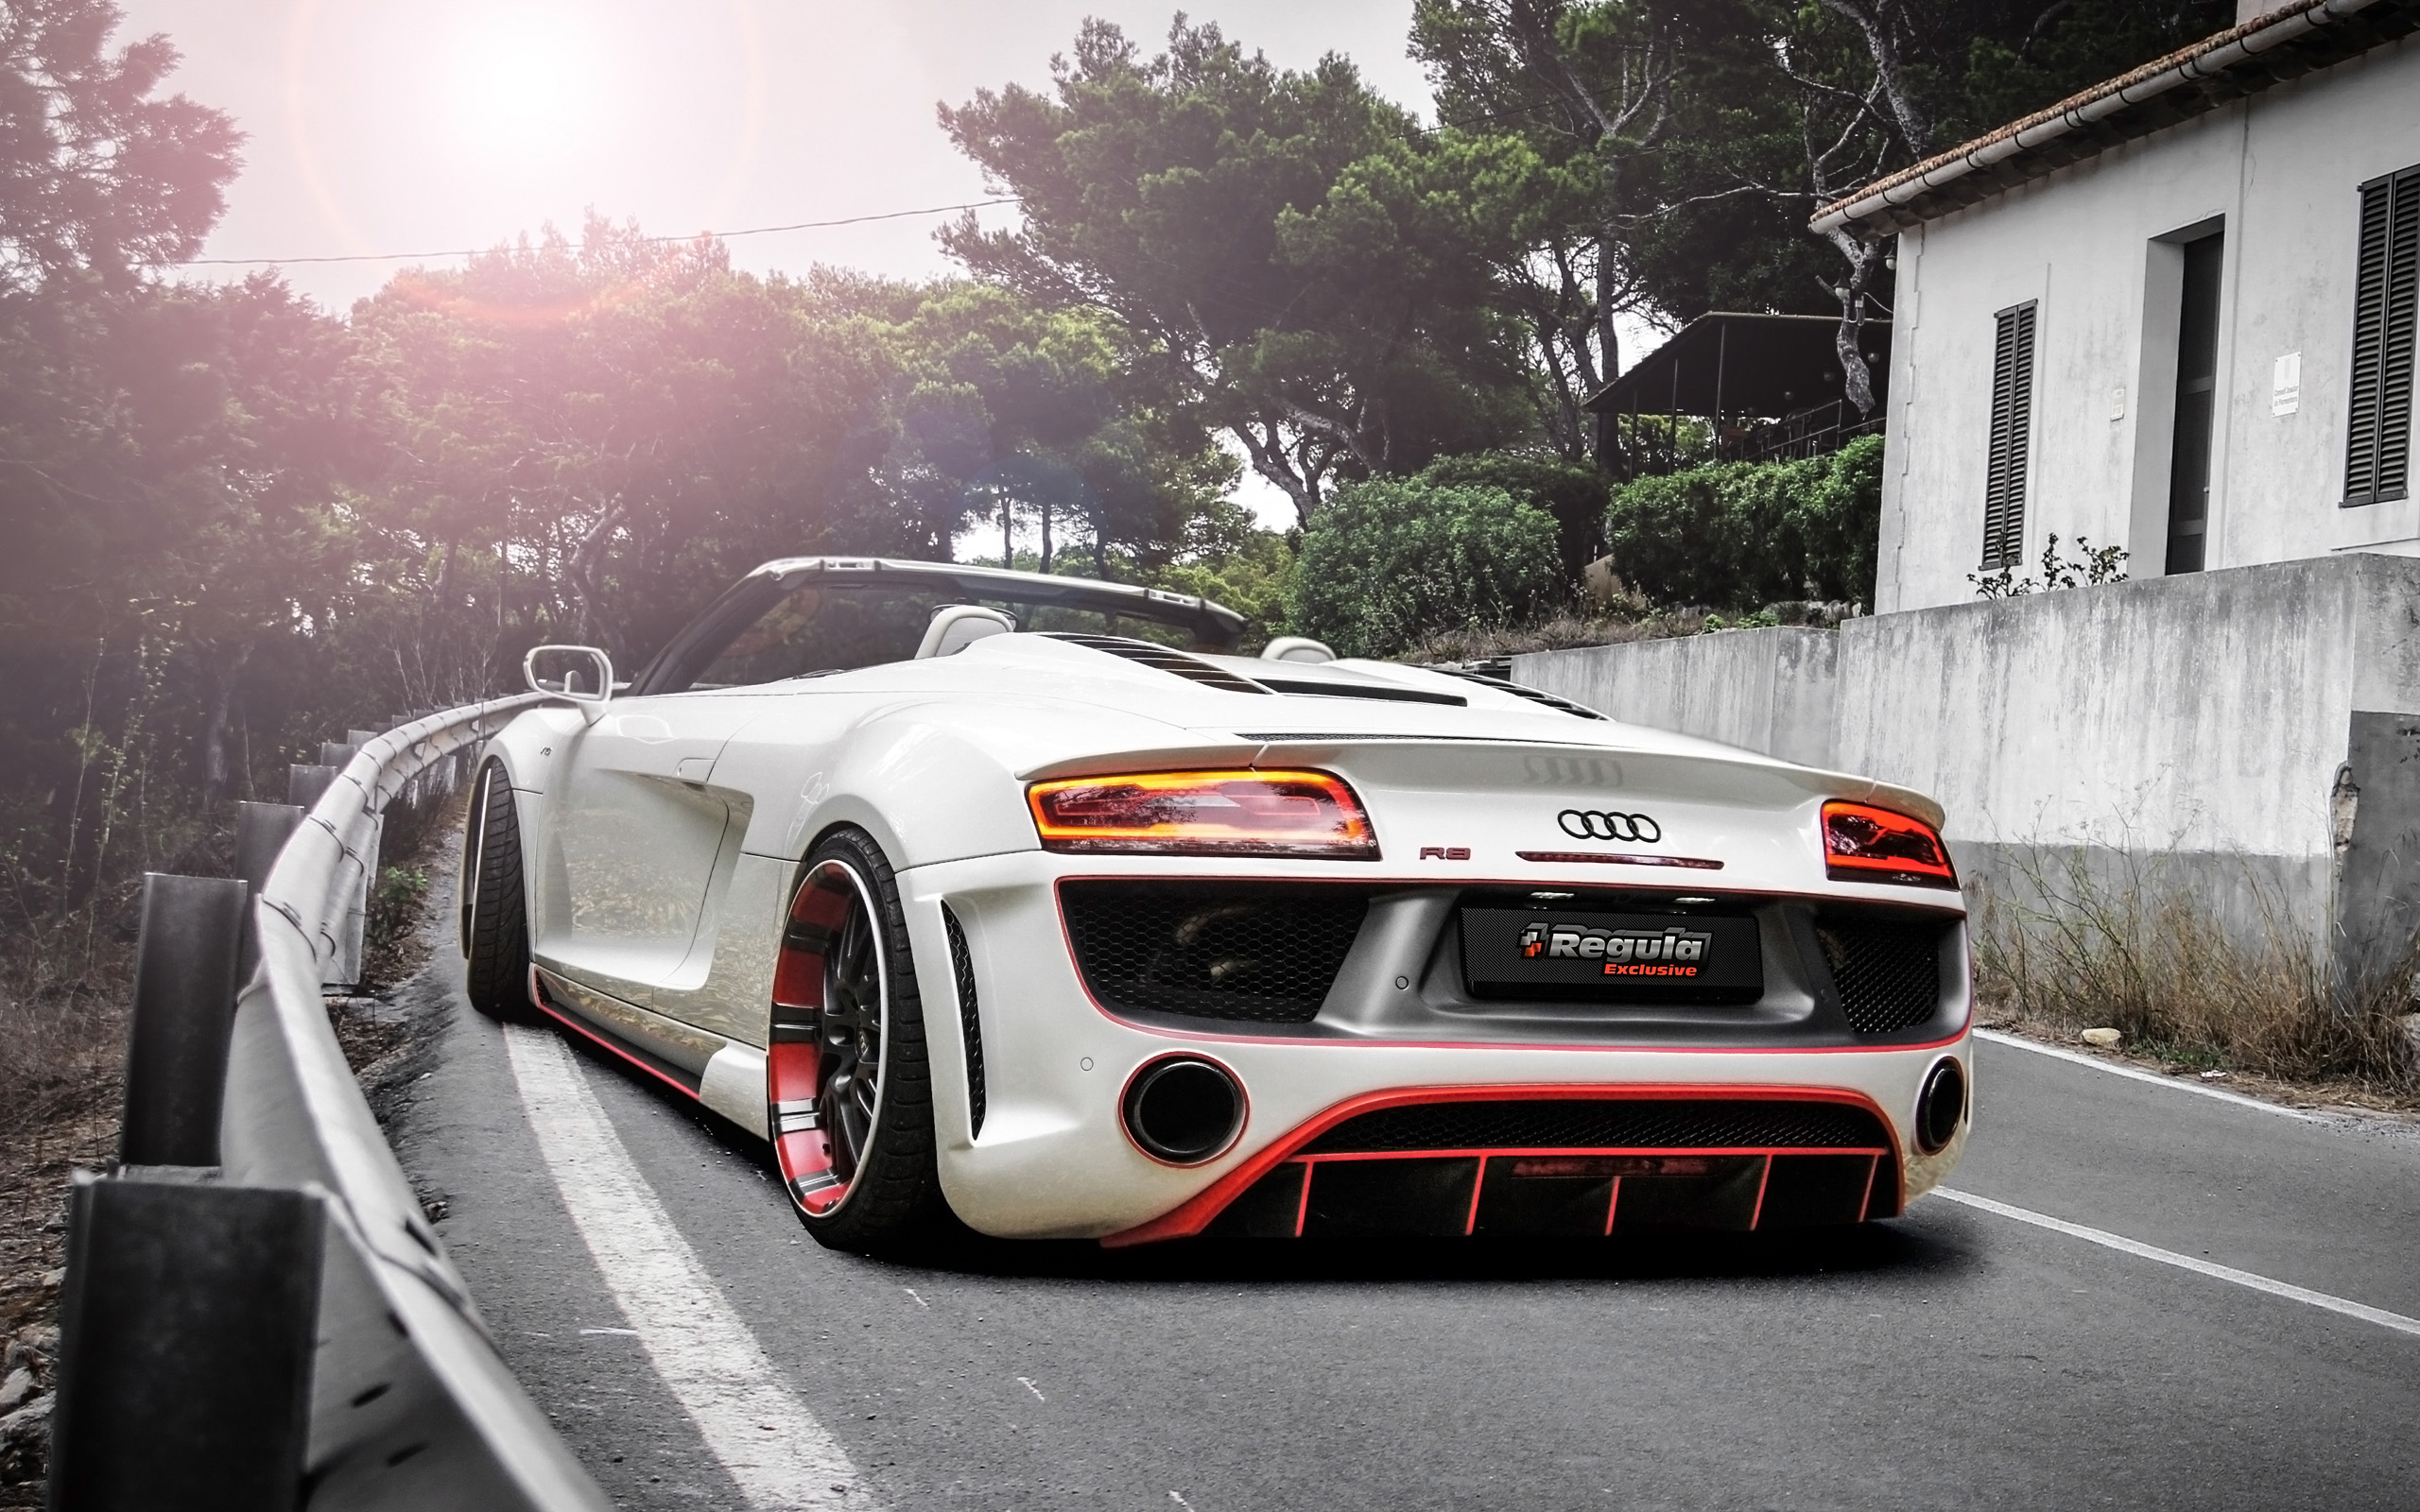 Audi R8 V10 Spyder By Regula Tuning 2 Wallpaper HD Car Wallpapers 2560x1600